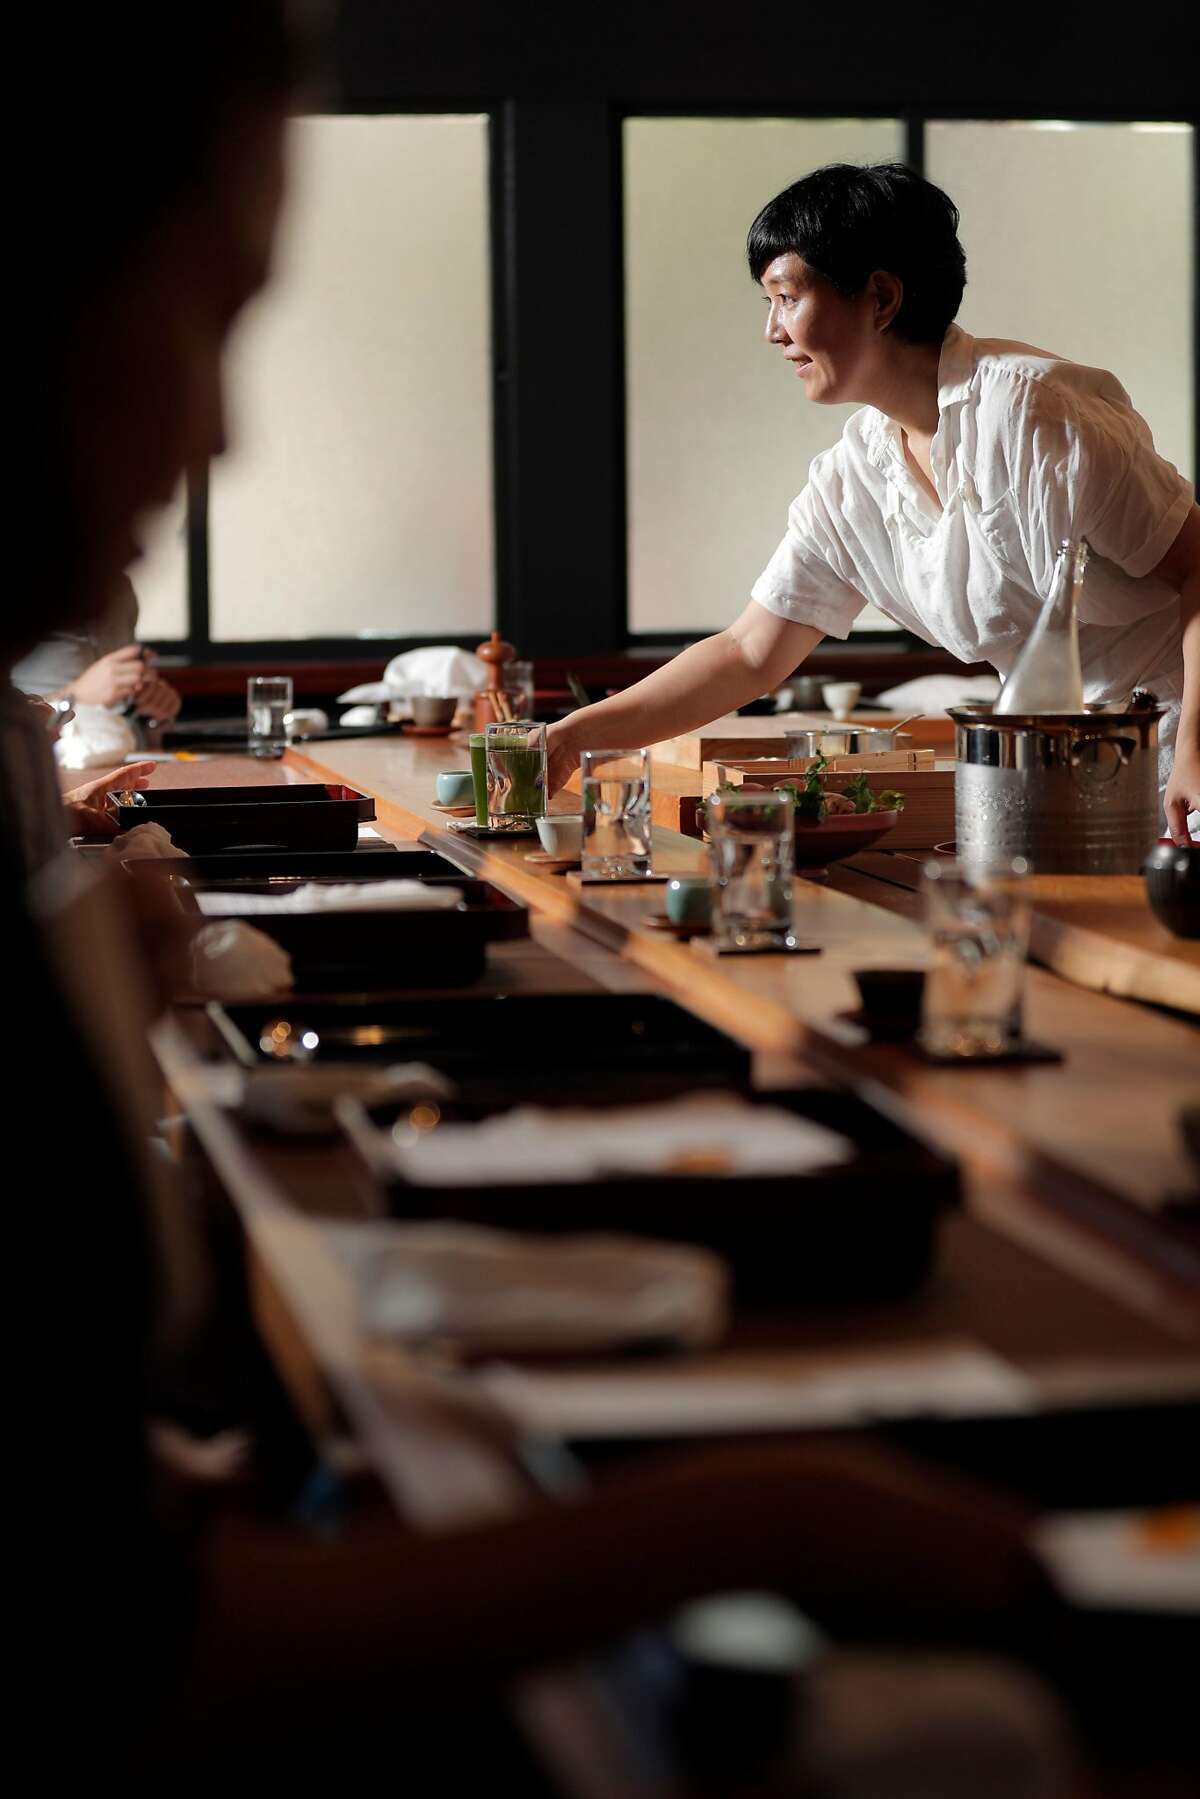 Junko Schwesig serves a dish to a guest during Oyatsuya, is a Sunday-afternoon pop-up by Schwesig, hosted at a sushi bar in San Francisco , Calif., on Sunday, July 15, 2018. Schwesig serves a multi-course tasting menu of Japanese sweets along with super-premium Japanese teas, including gorgeous little bites that are all about the peak of the season.